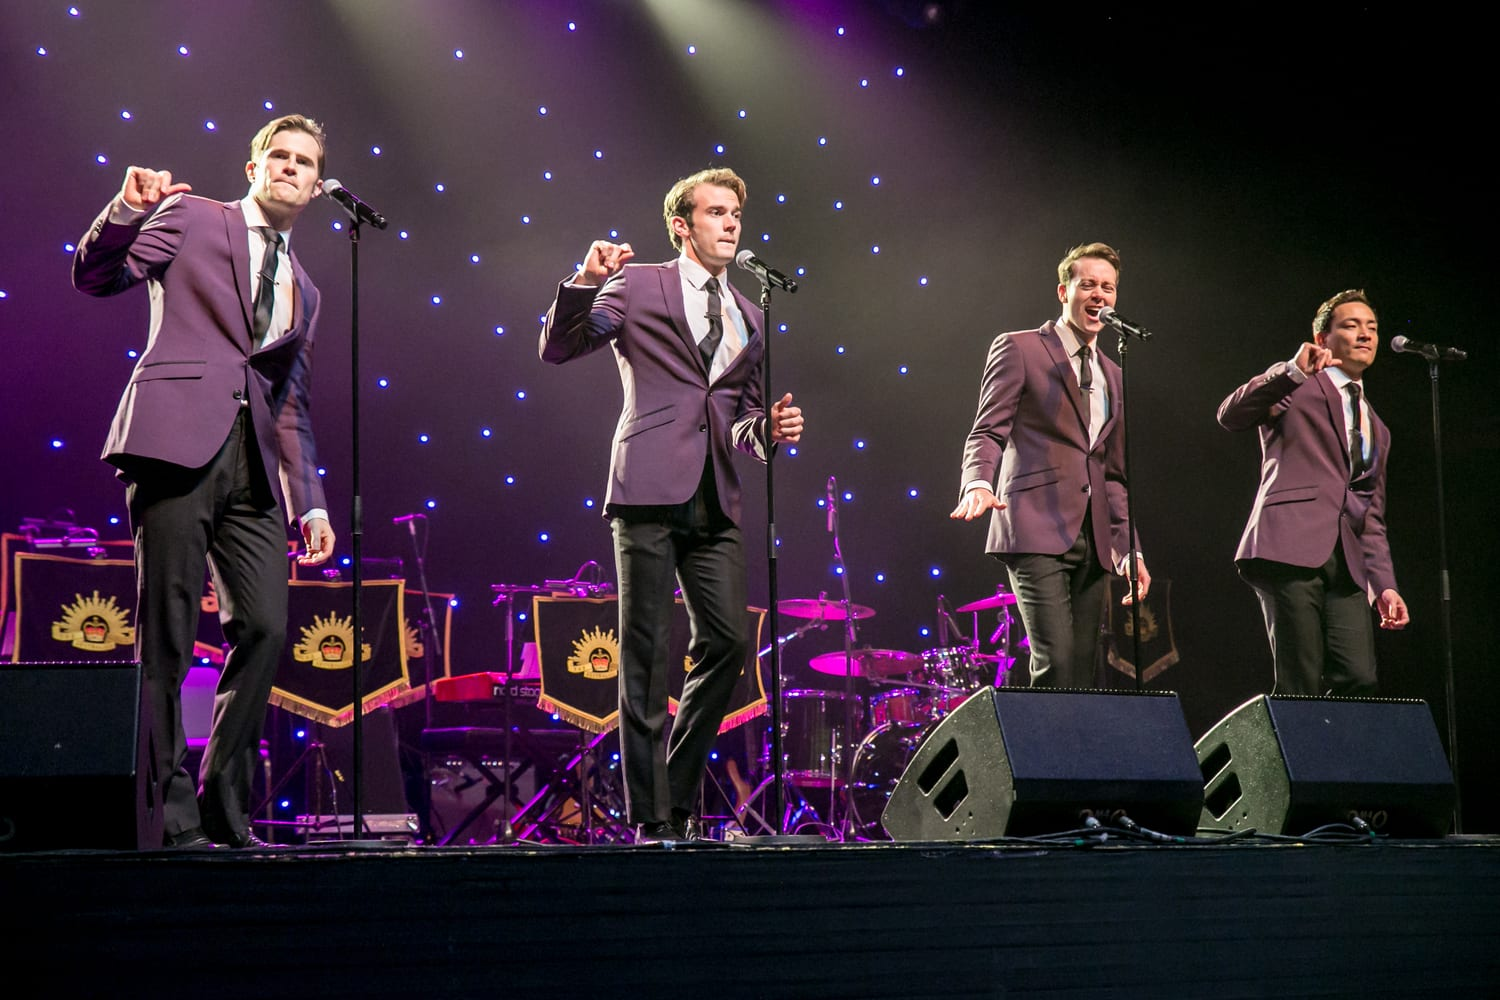 Corporate Entertainment Melbourne - Lovegrove Entertainment - Jersey to MoTown